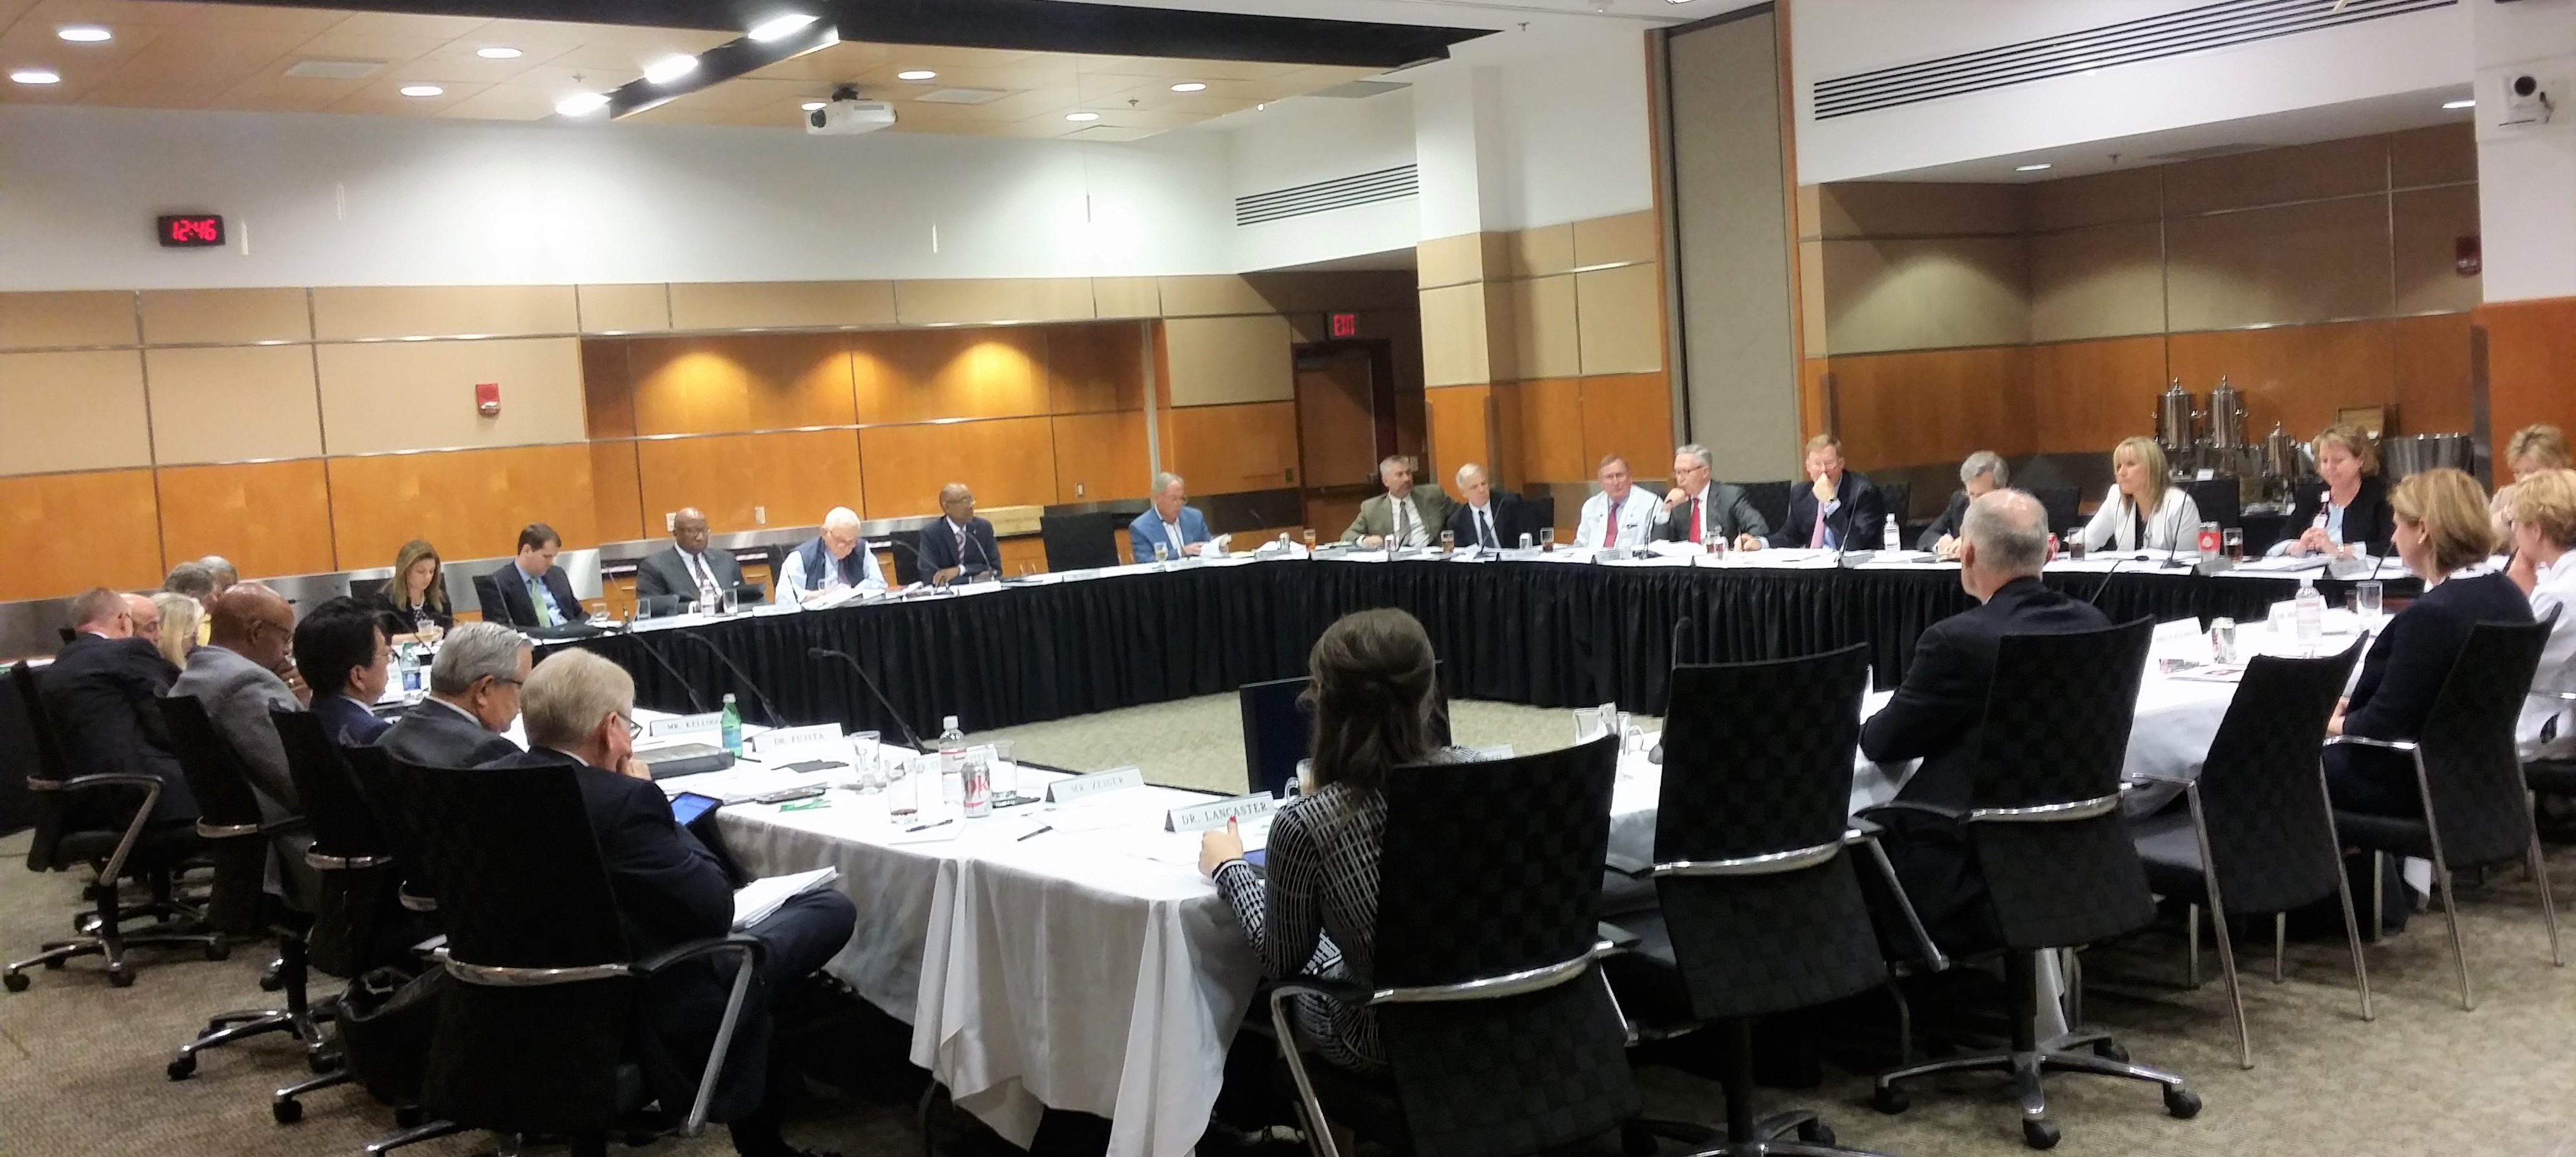 BOT - Wexner Medical Center Board 2017-06-06